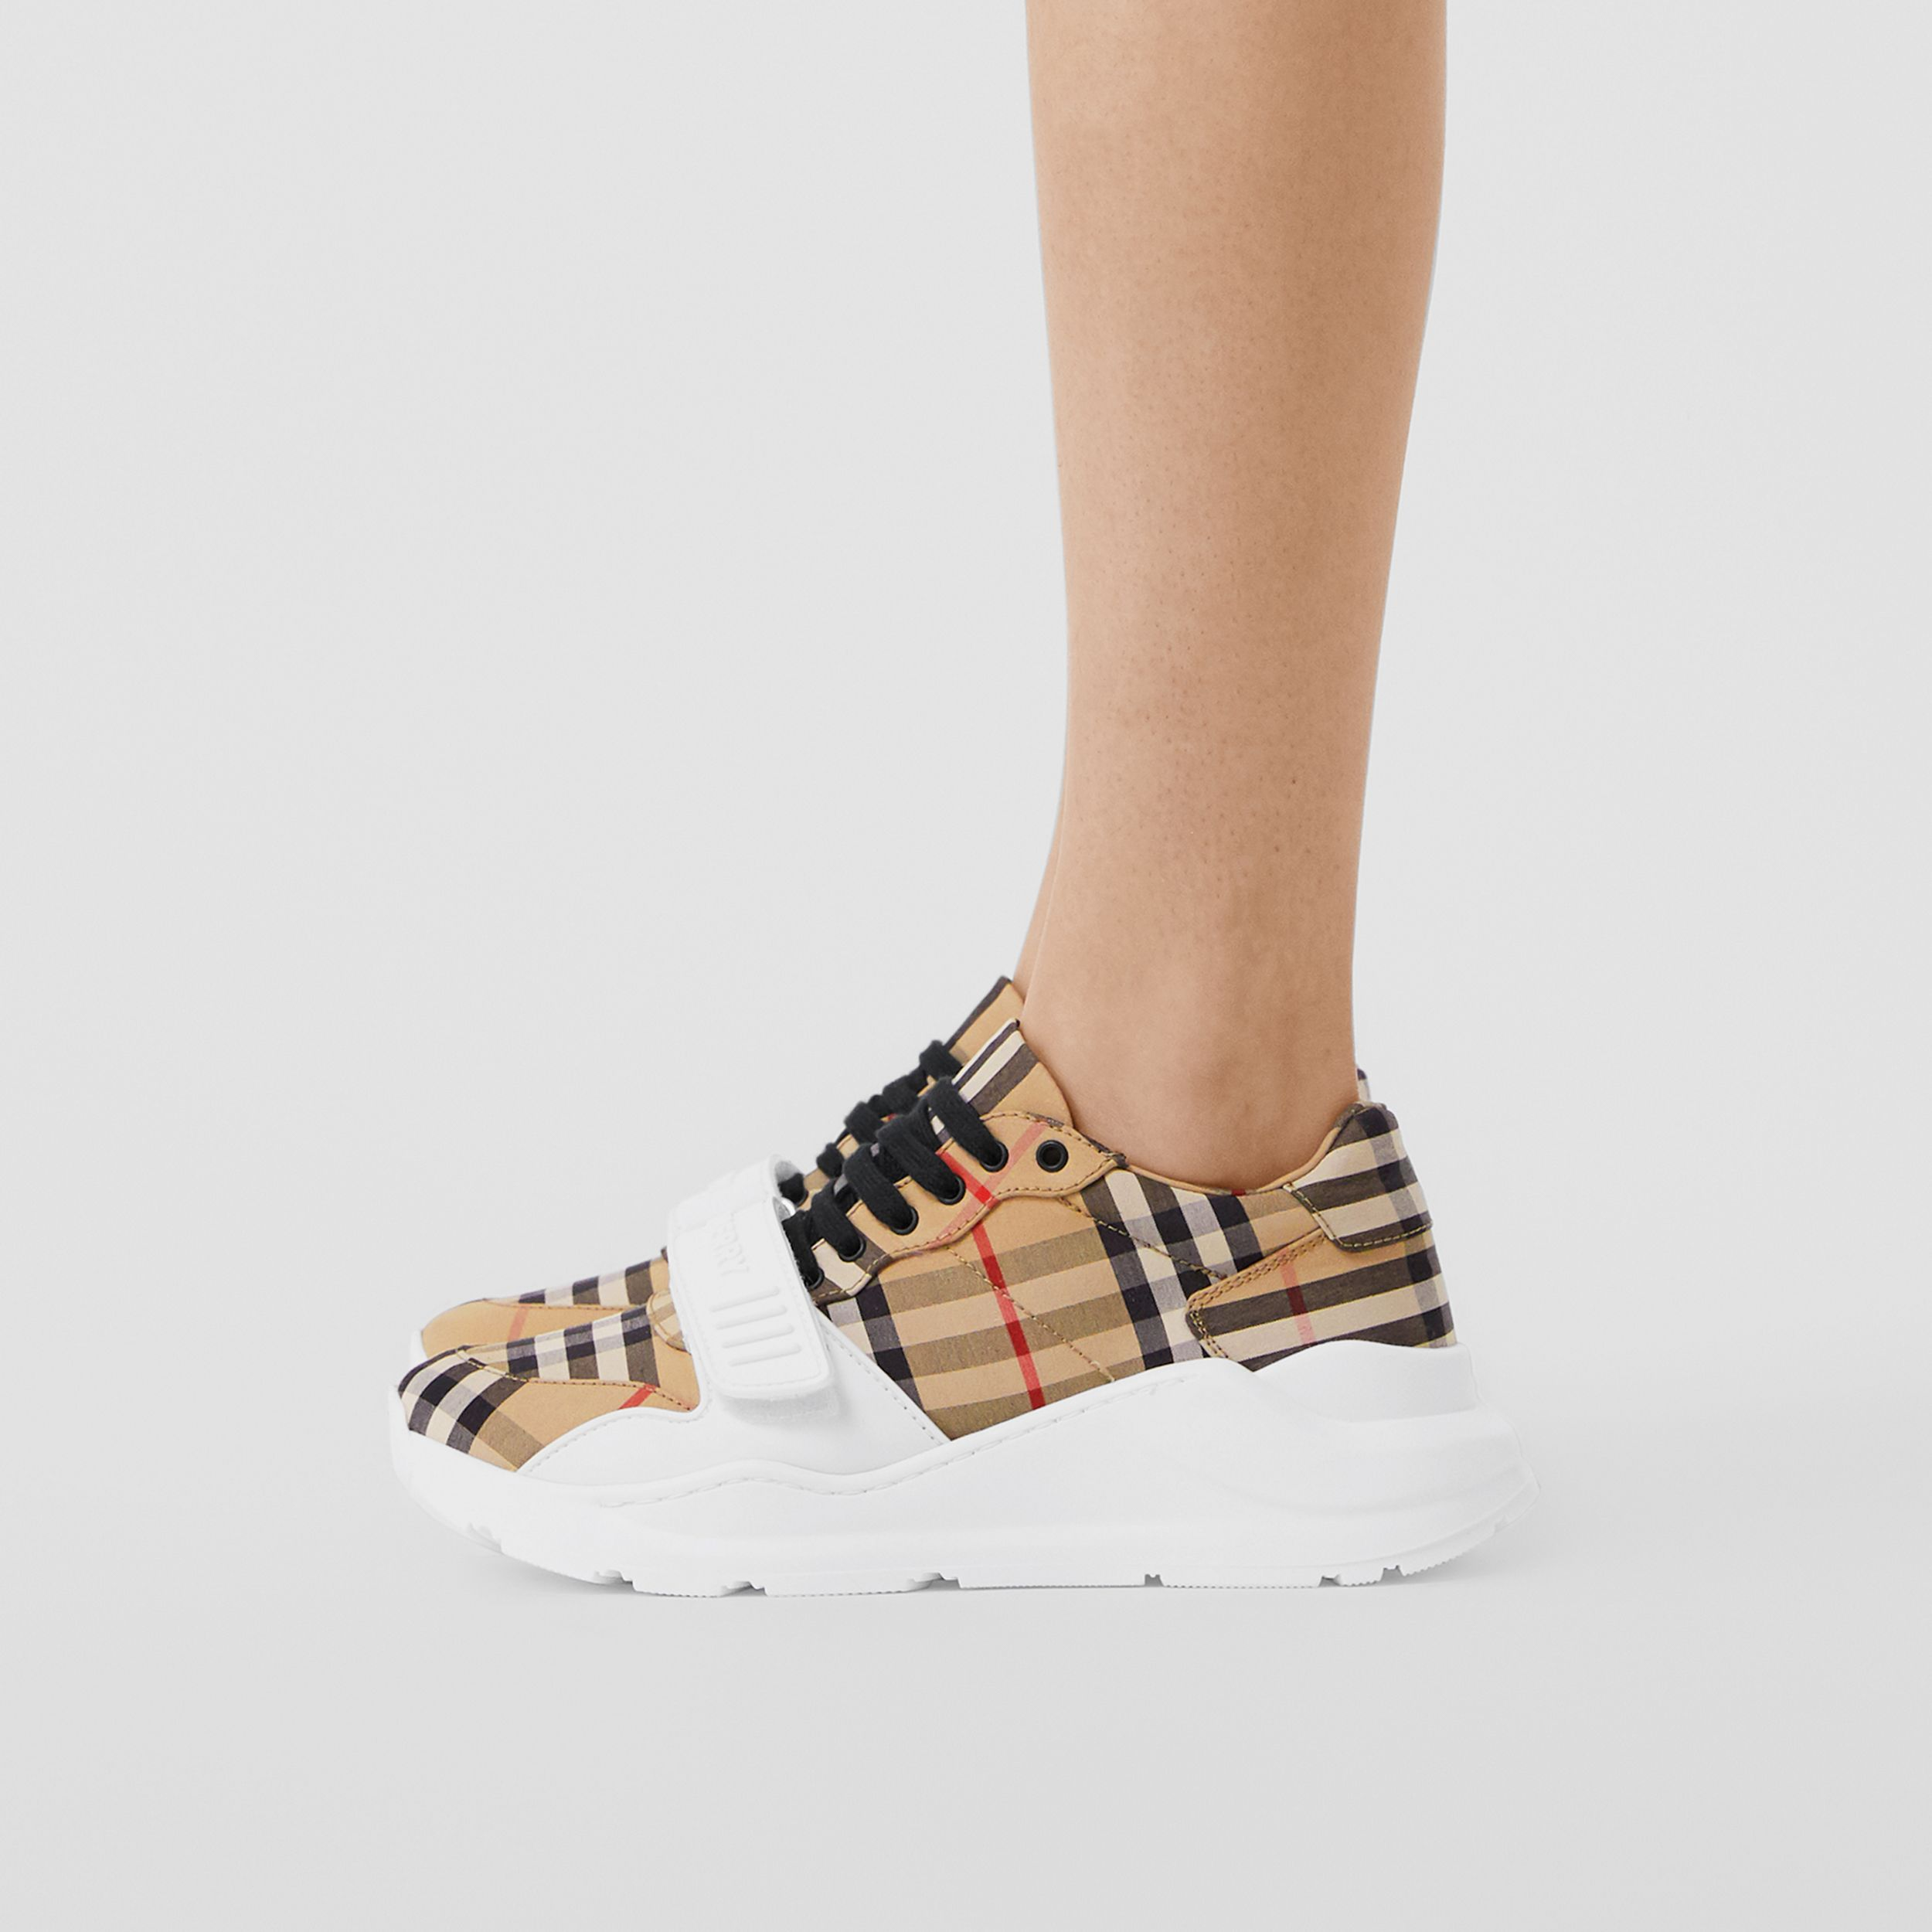 Vintage Check Cotton Sneakers in Archive Beige - Women | Burberry - 3